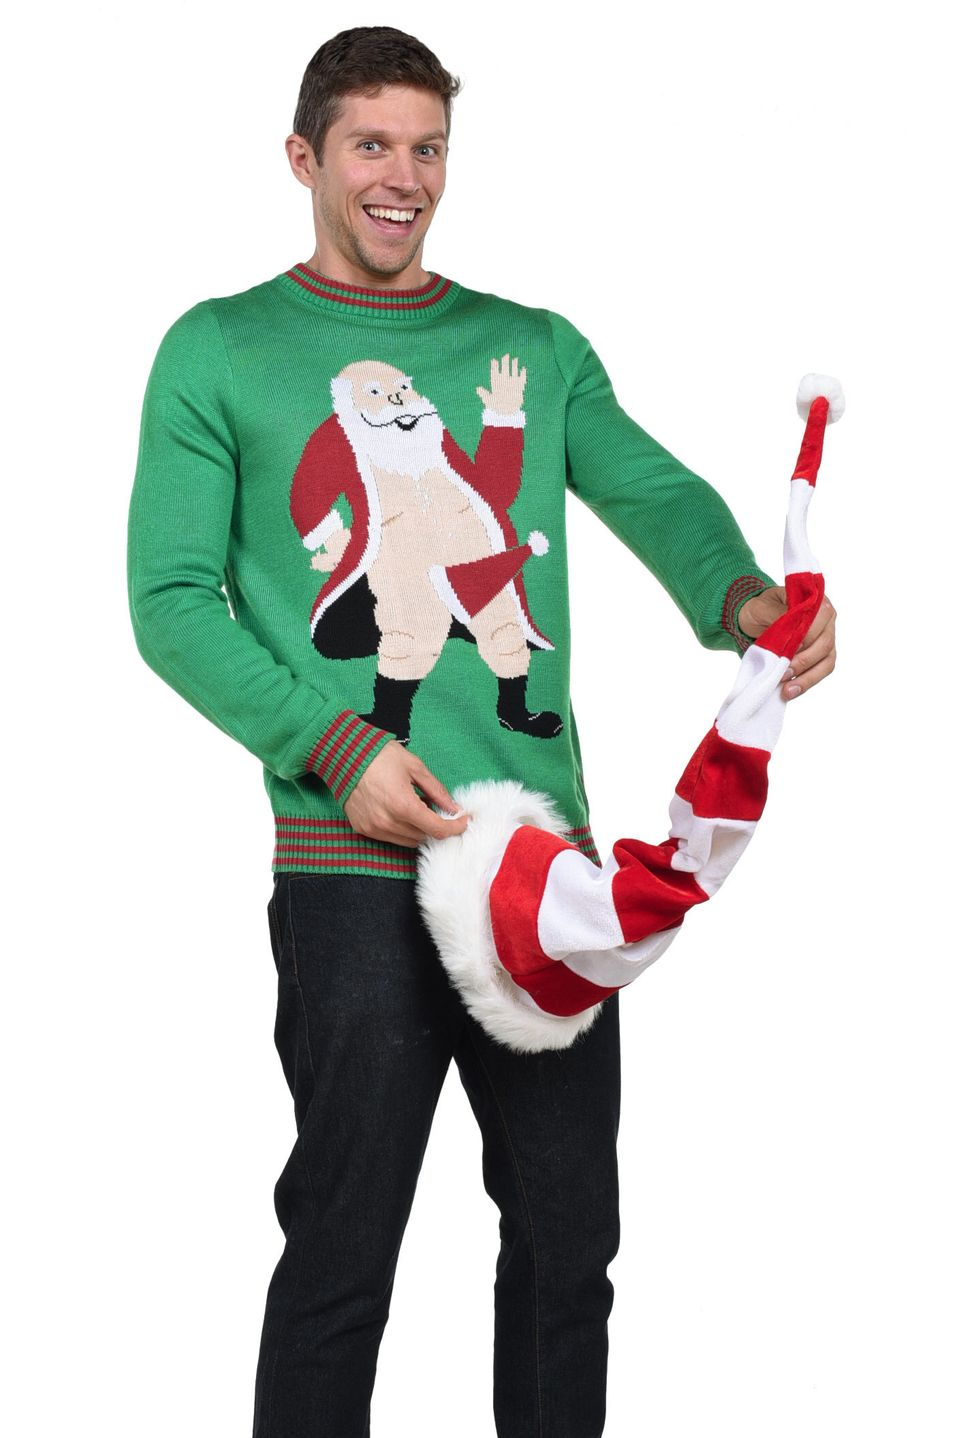 "Hats off to whoever designed this tasteful and elegant sweater showing <a href=""http://www.tipsyelves.com/mens-santa-boner-sw"